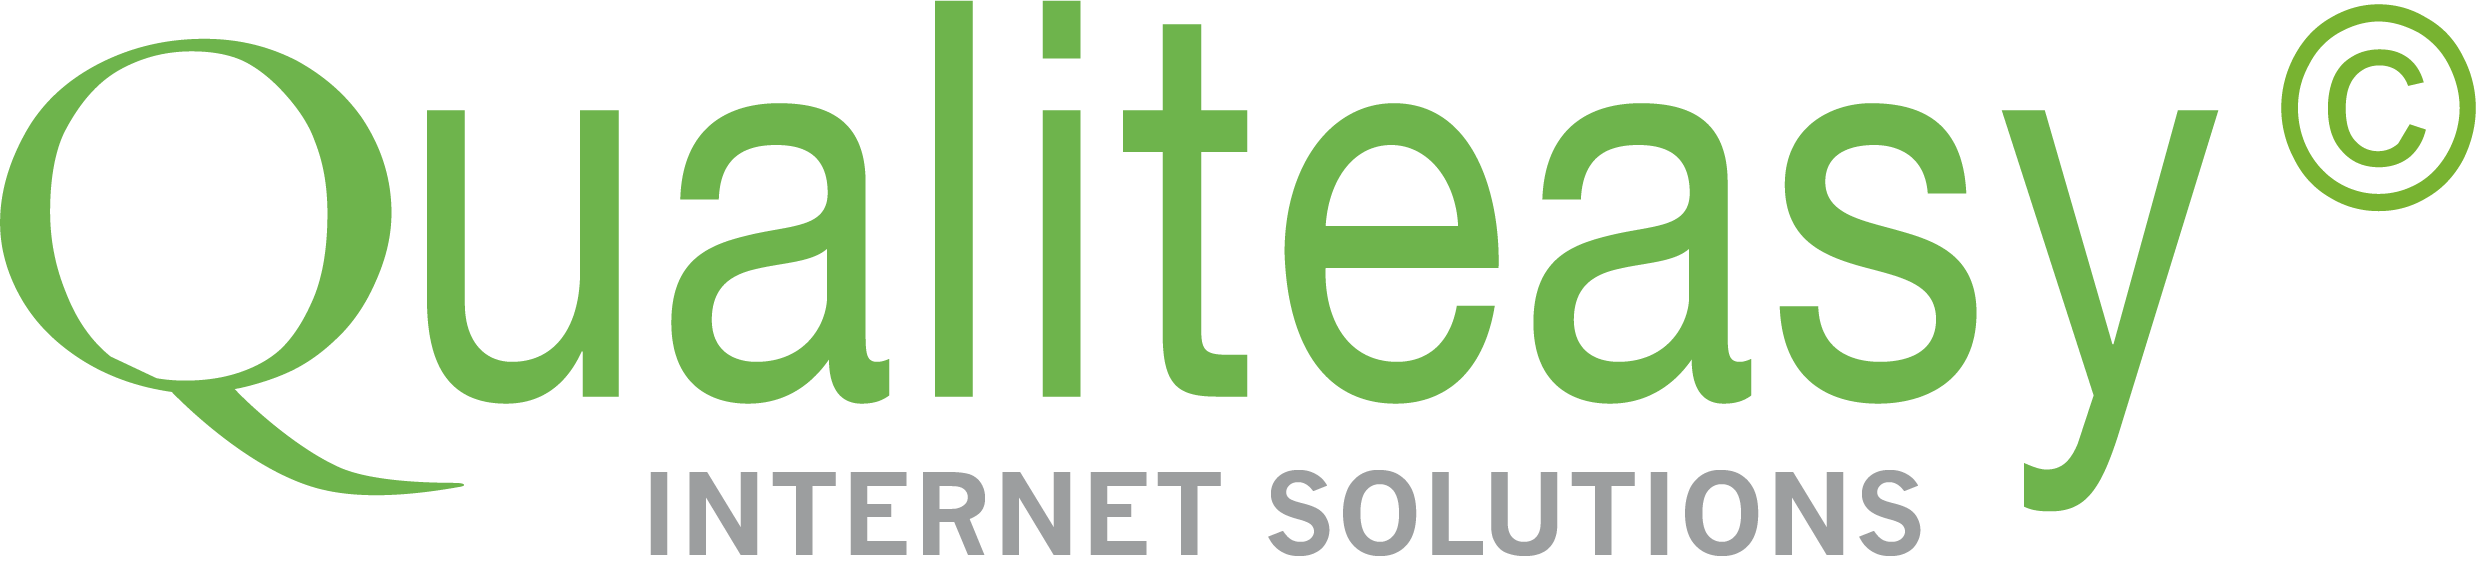 qualiteasy internet solutions logo